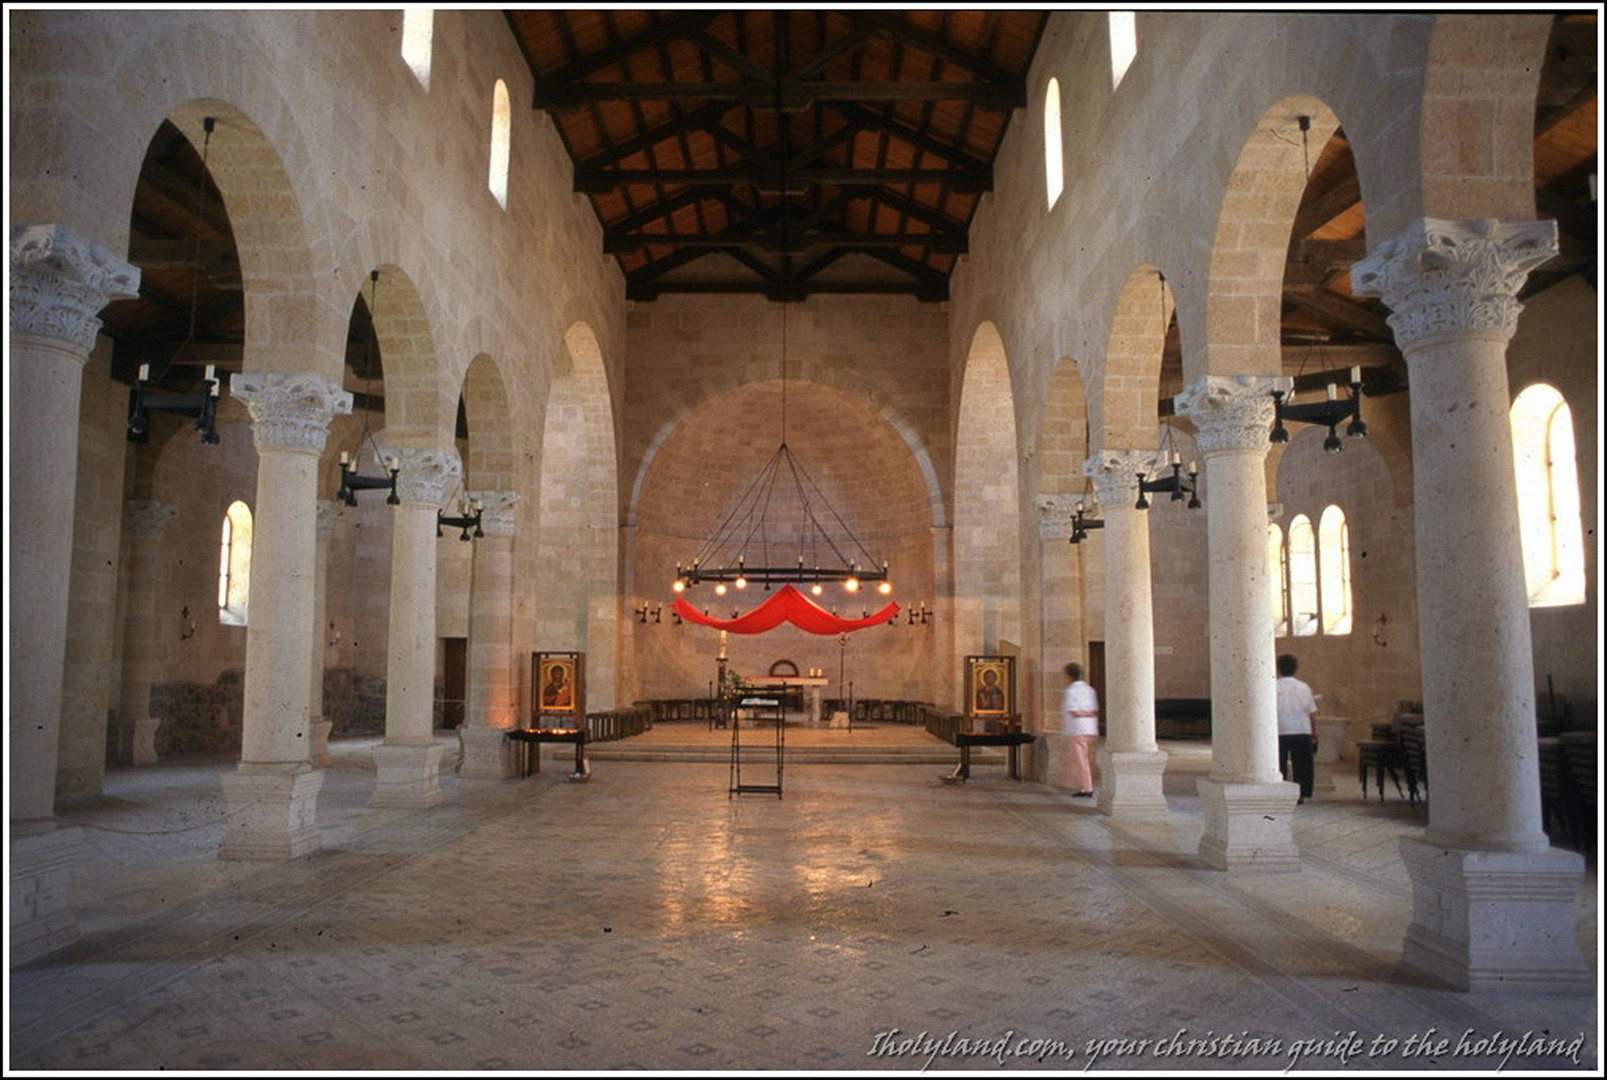 The Church of the Multiplication of the Loaves and Fishes